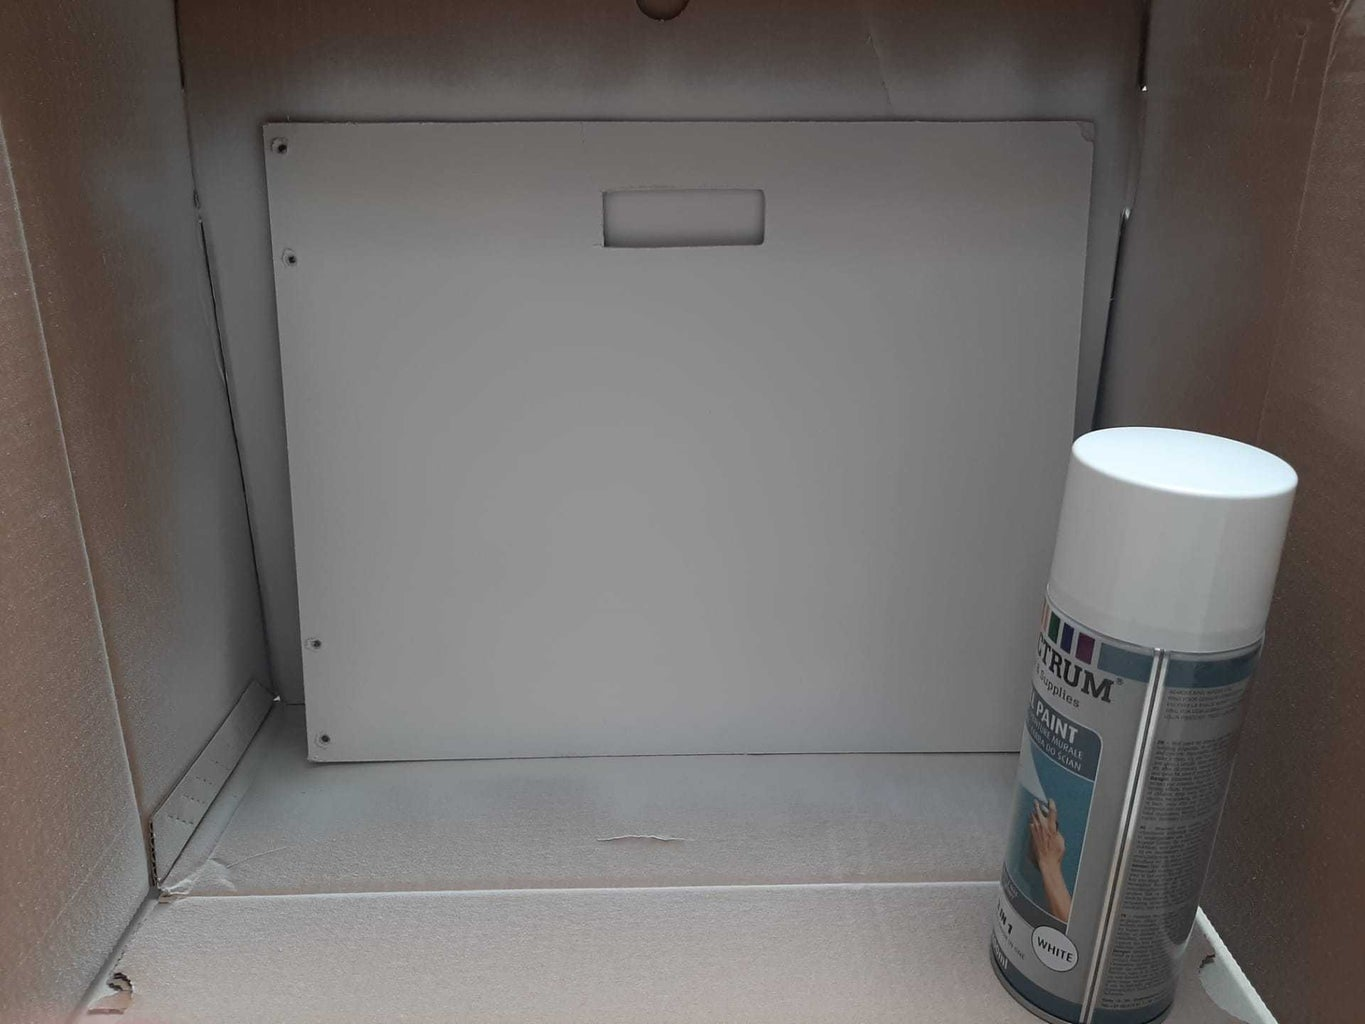 Front Panel and Shelf